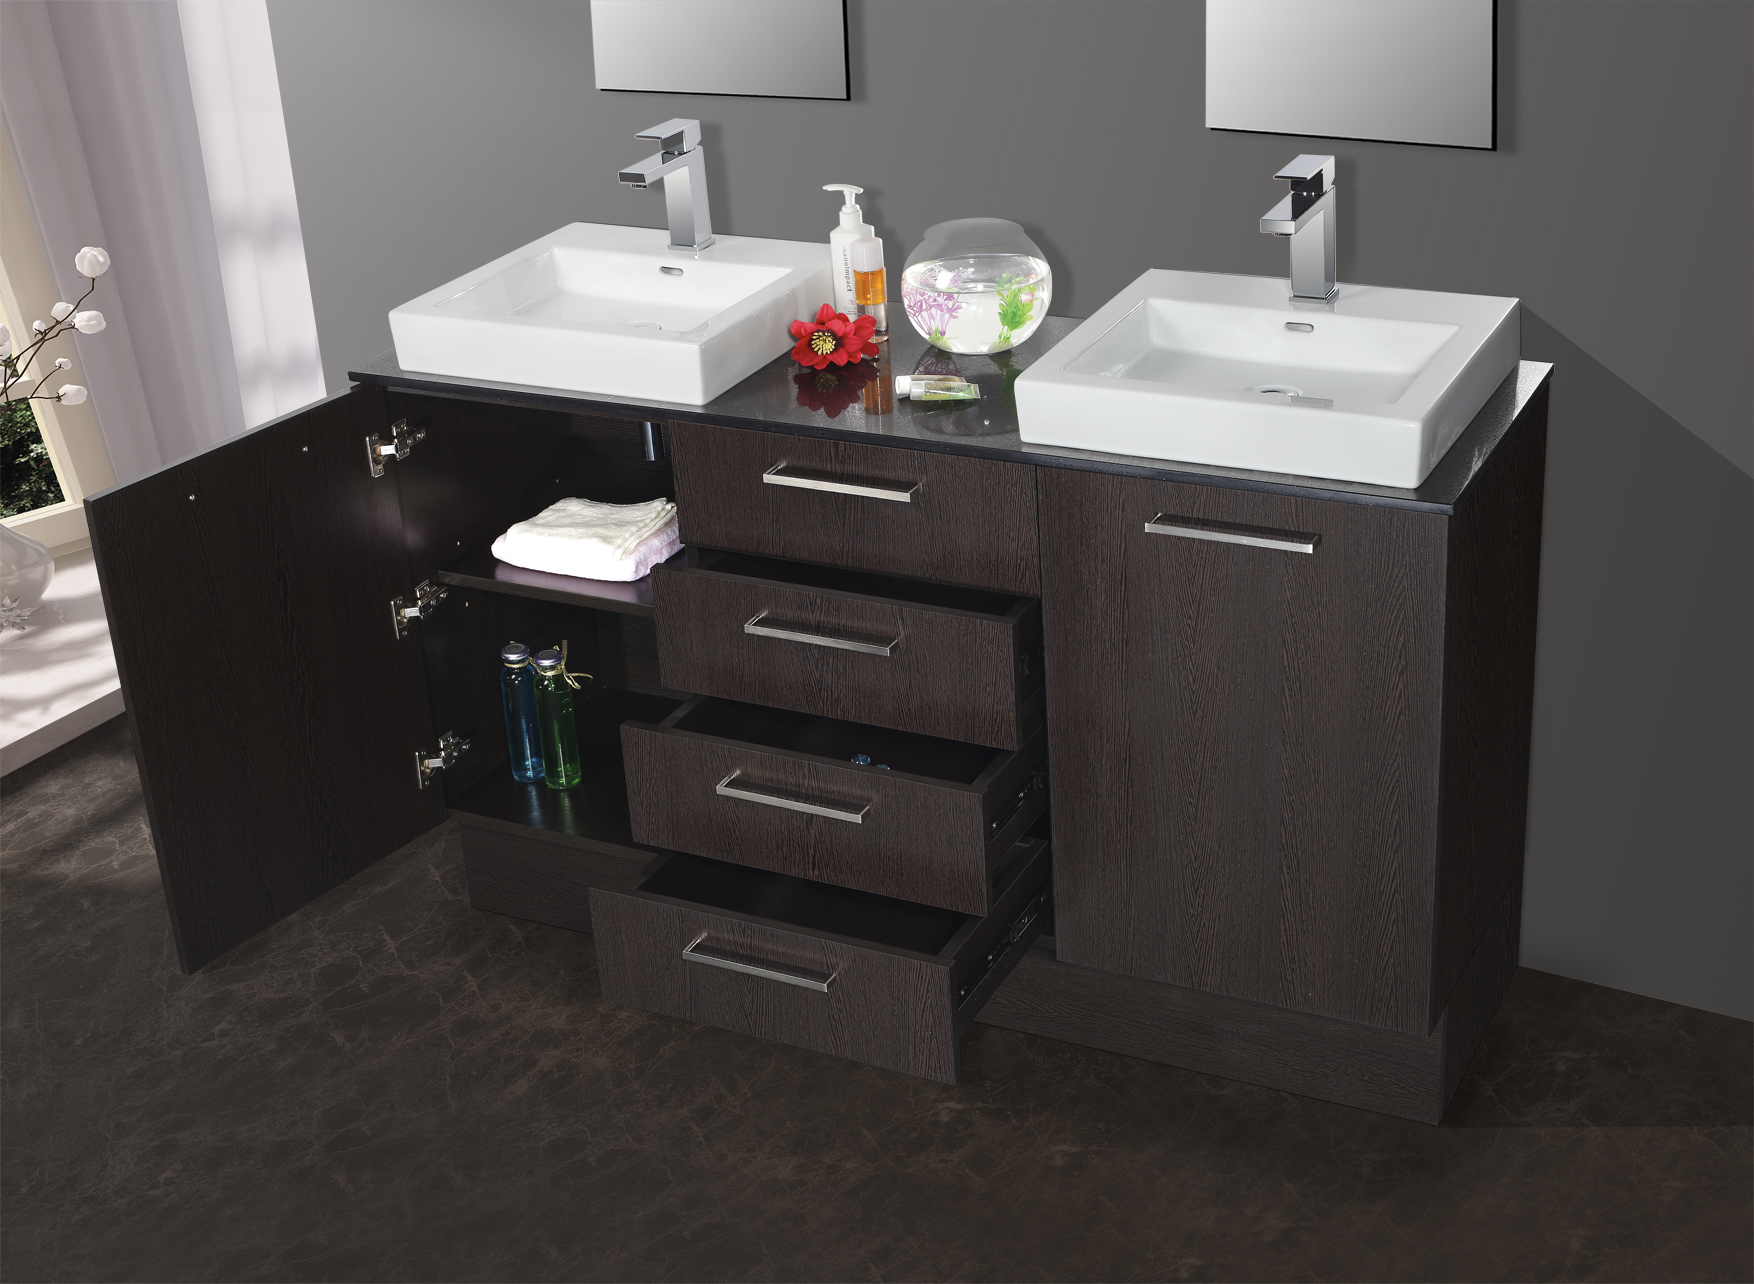 Double Bathroom Vanity Basins Good Choice Or Bad Option